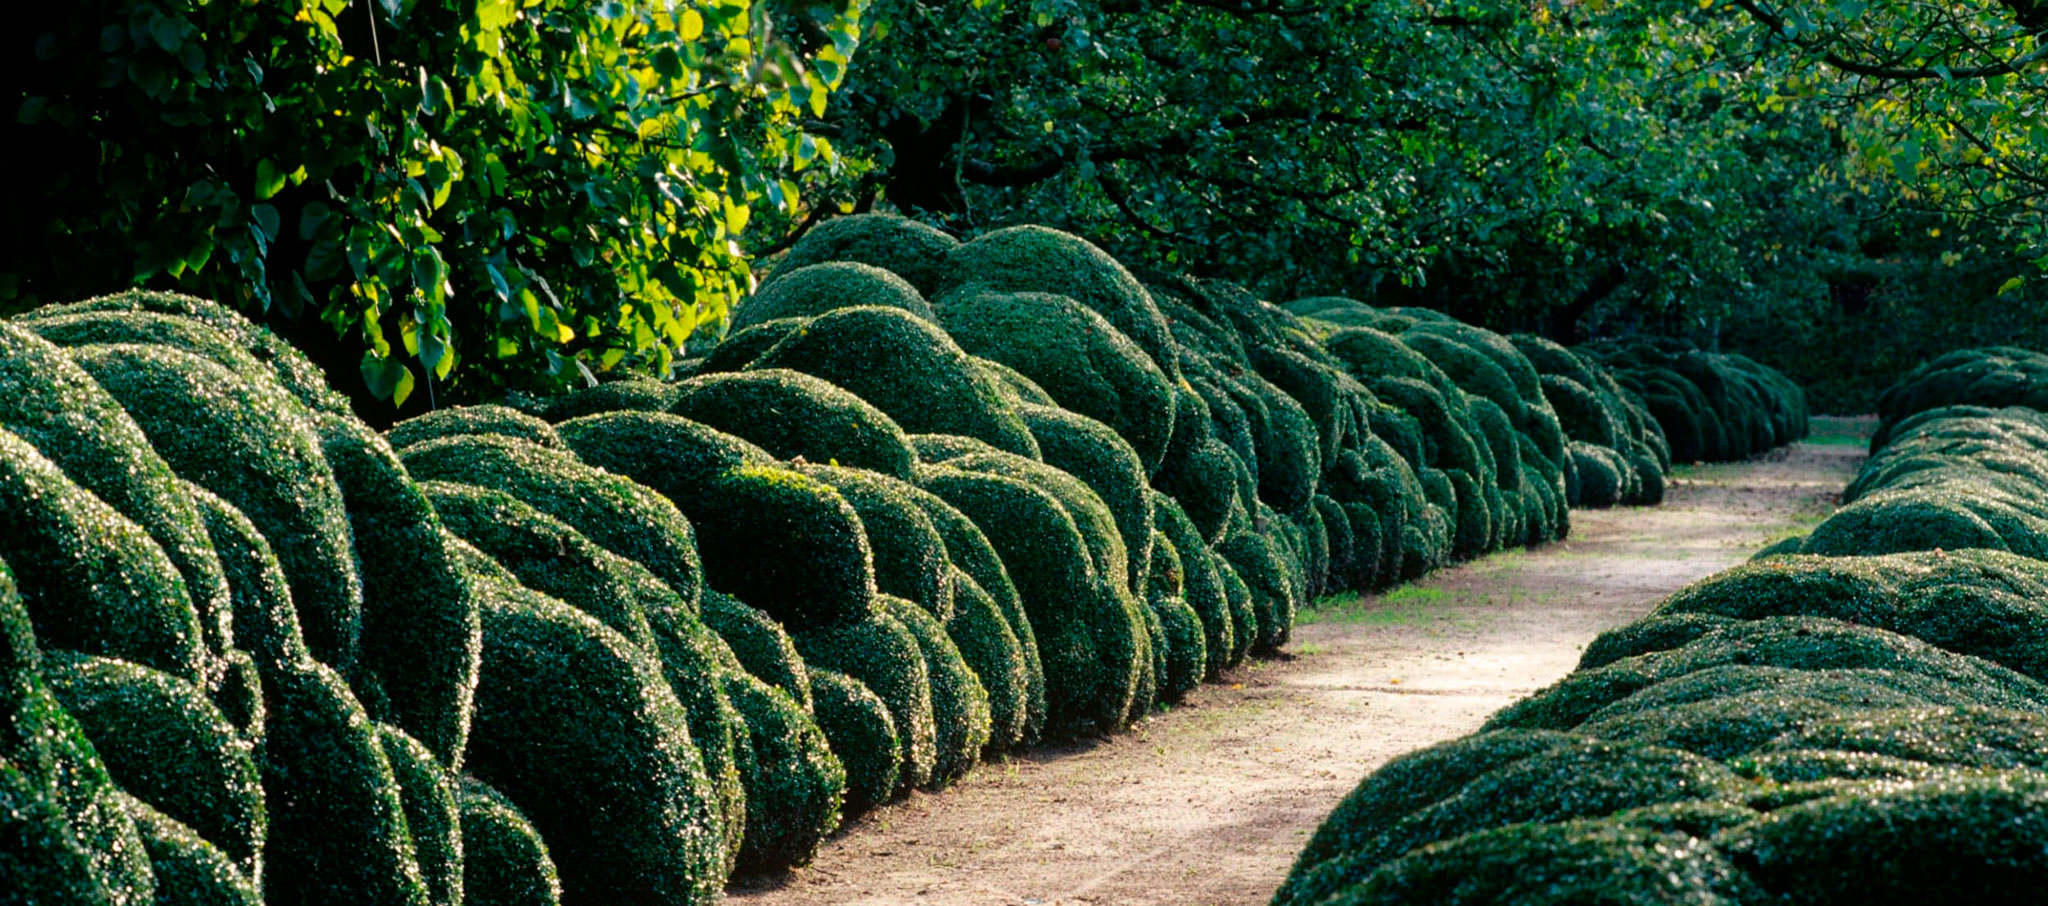 The most iconic aspect of the Wirtz style is his unconventional and sculptural use of clipped hedges